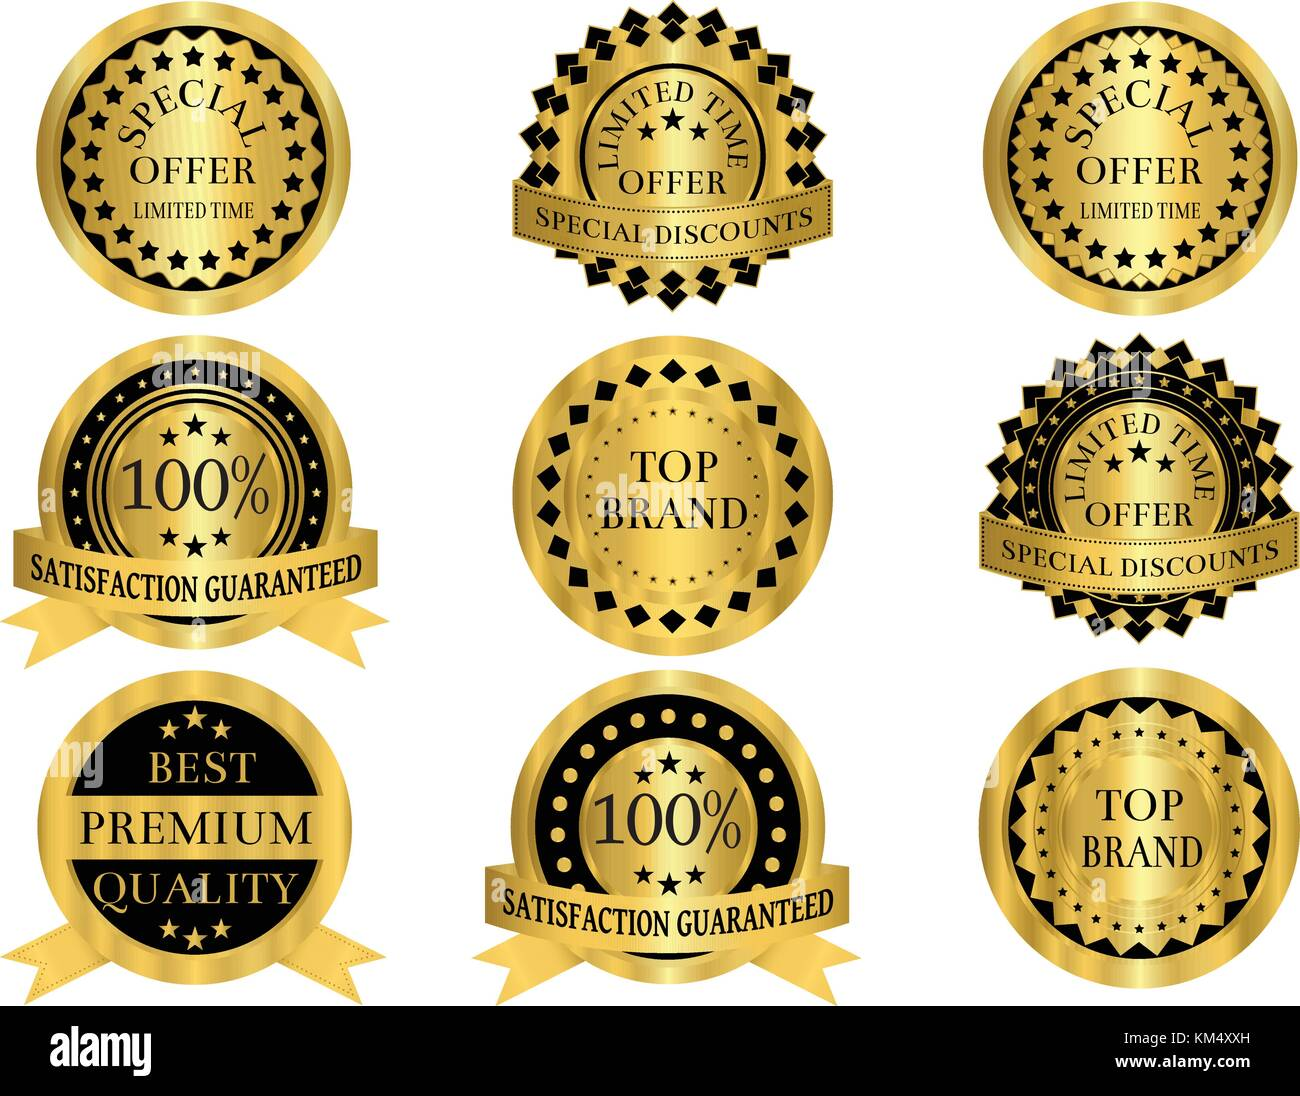 Gold promotion badges that can be used for promotion,discount,sales,marketing,product labels and anything else. - Stock Vector